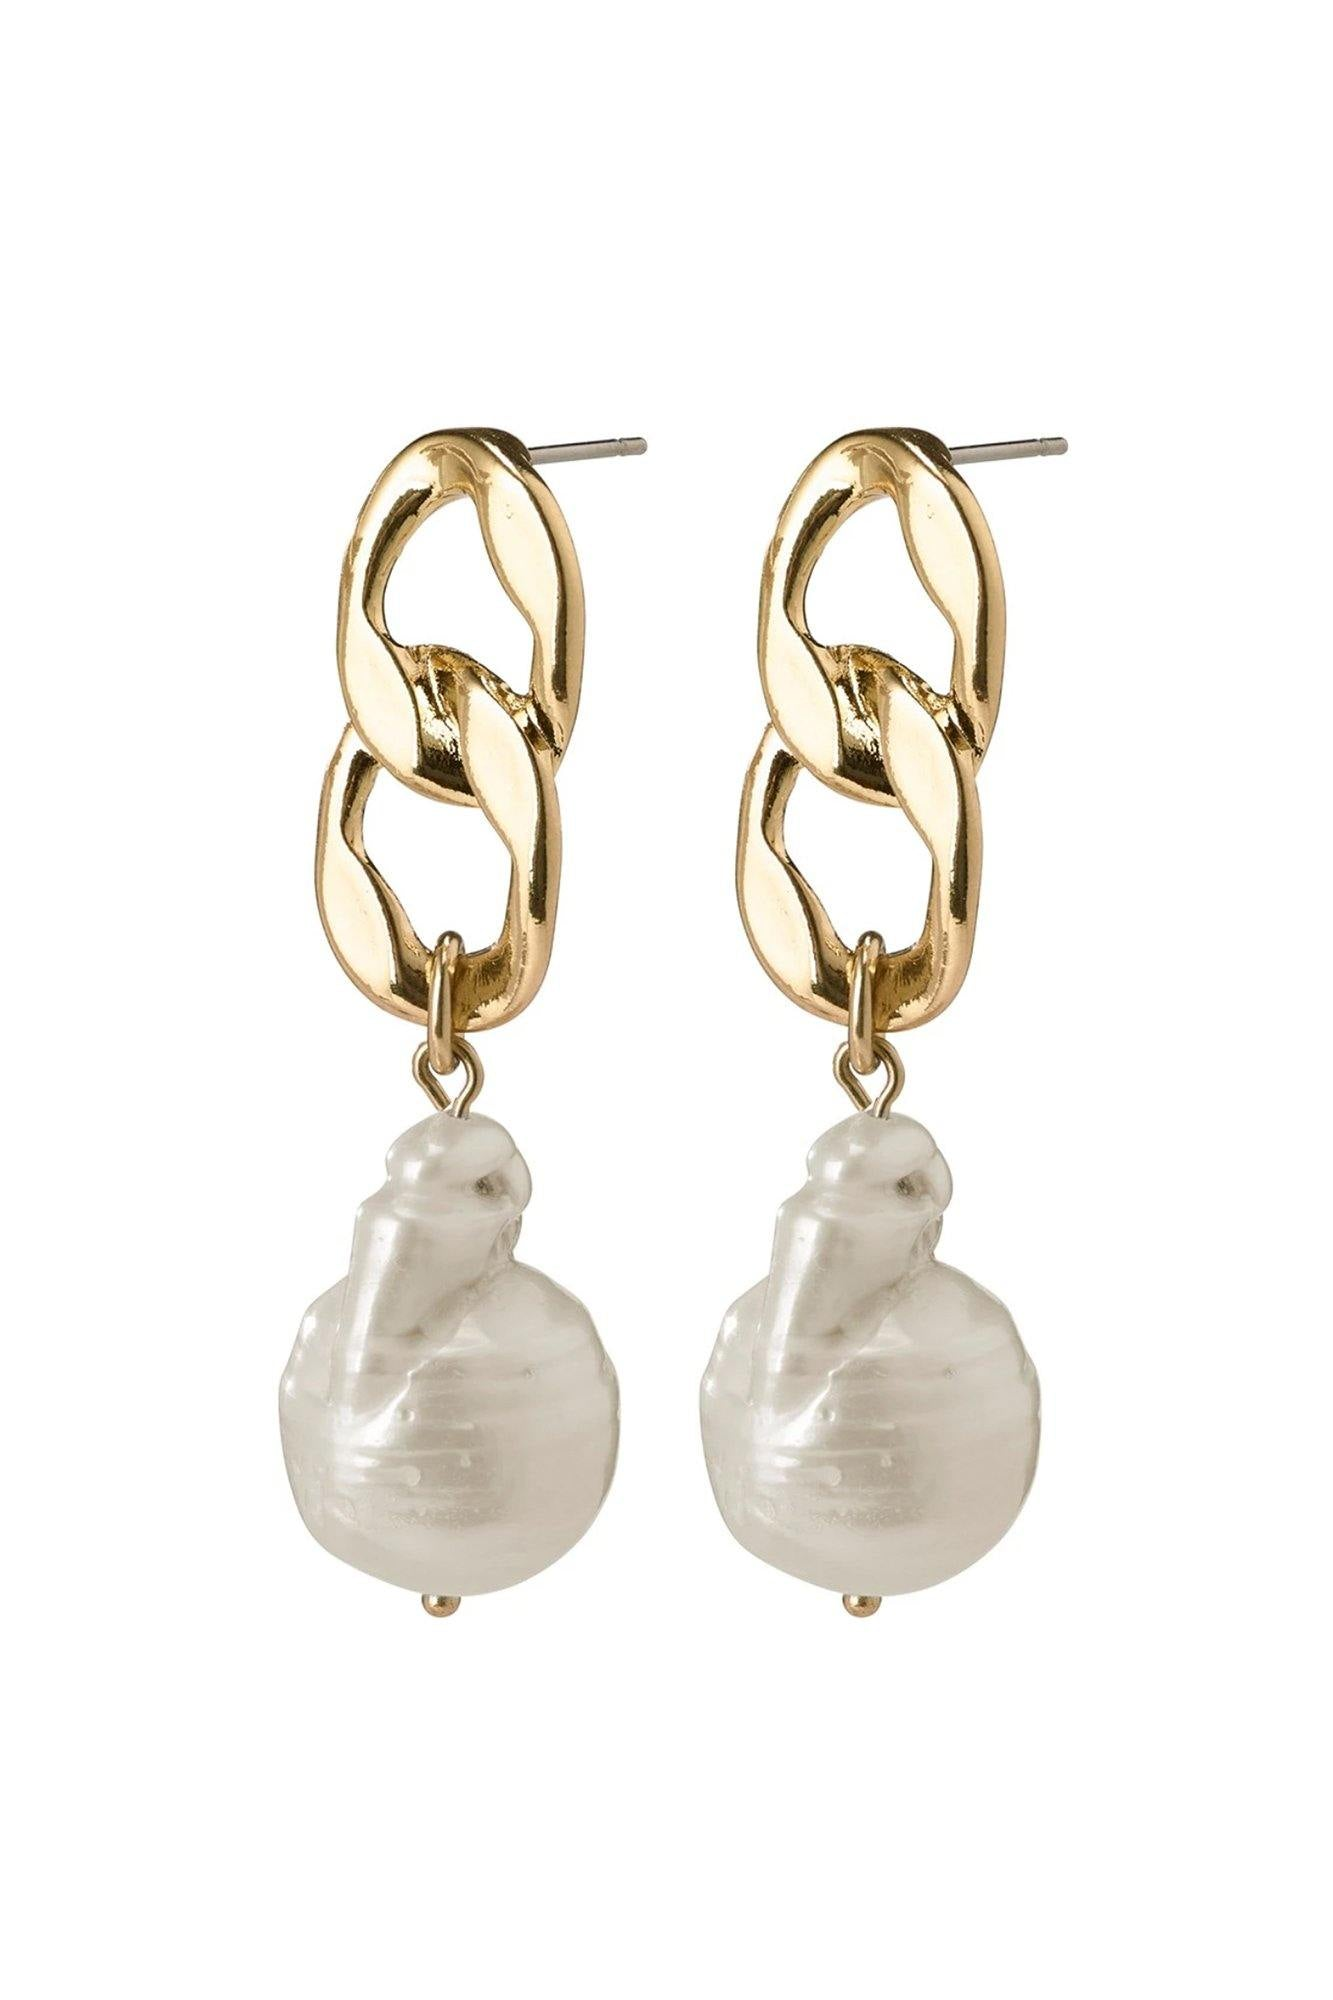 Pilgrim Gracefulness Earrings Gold Plated Pearl